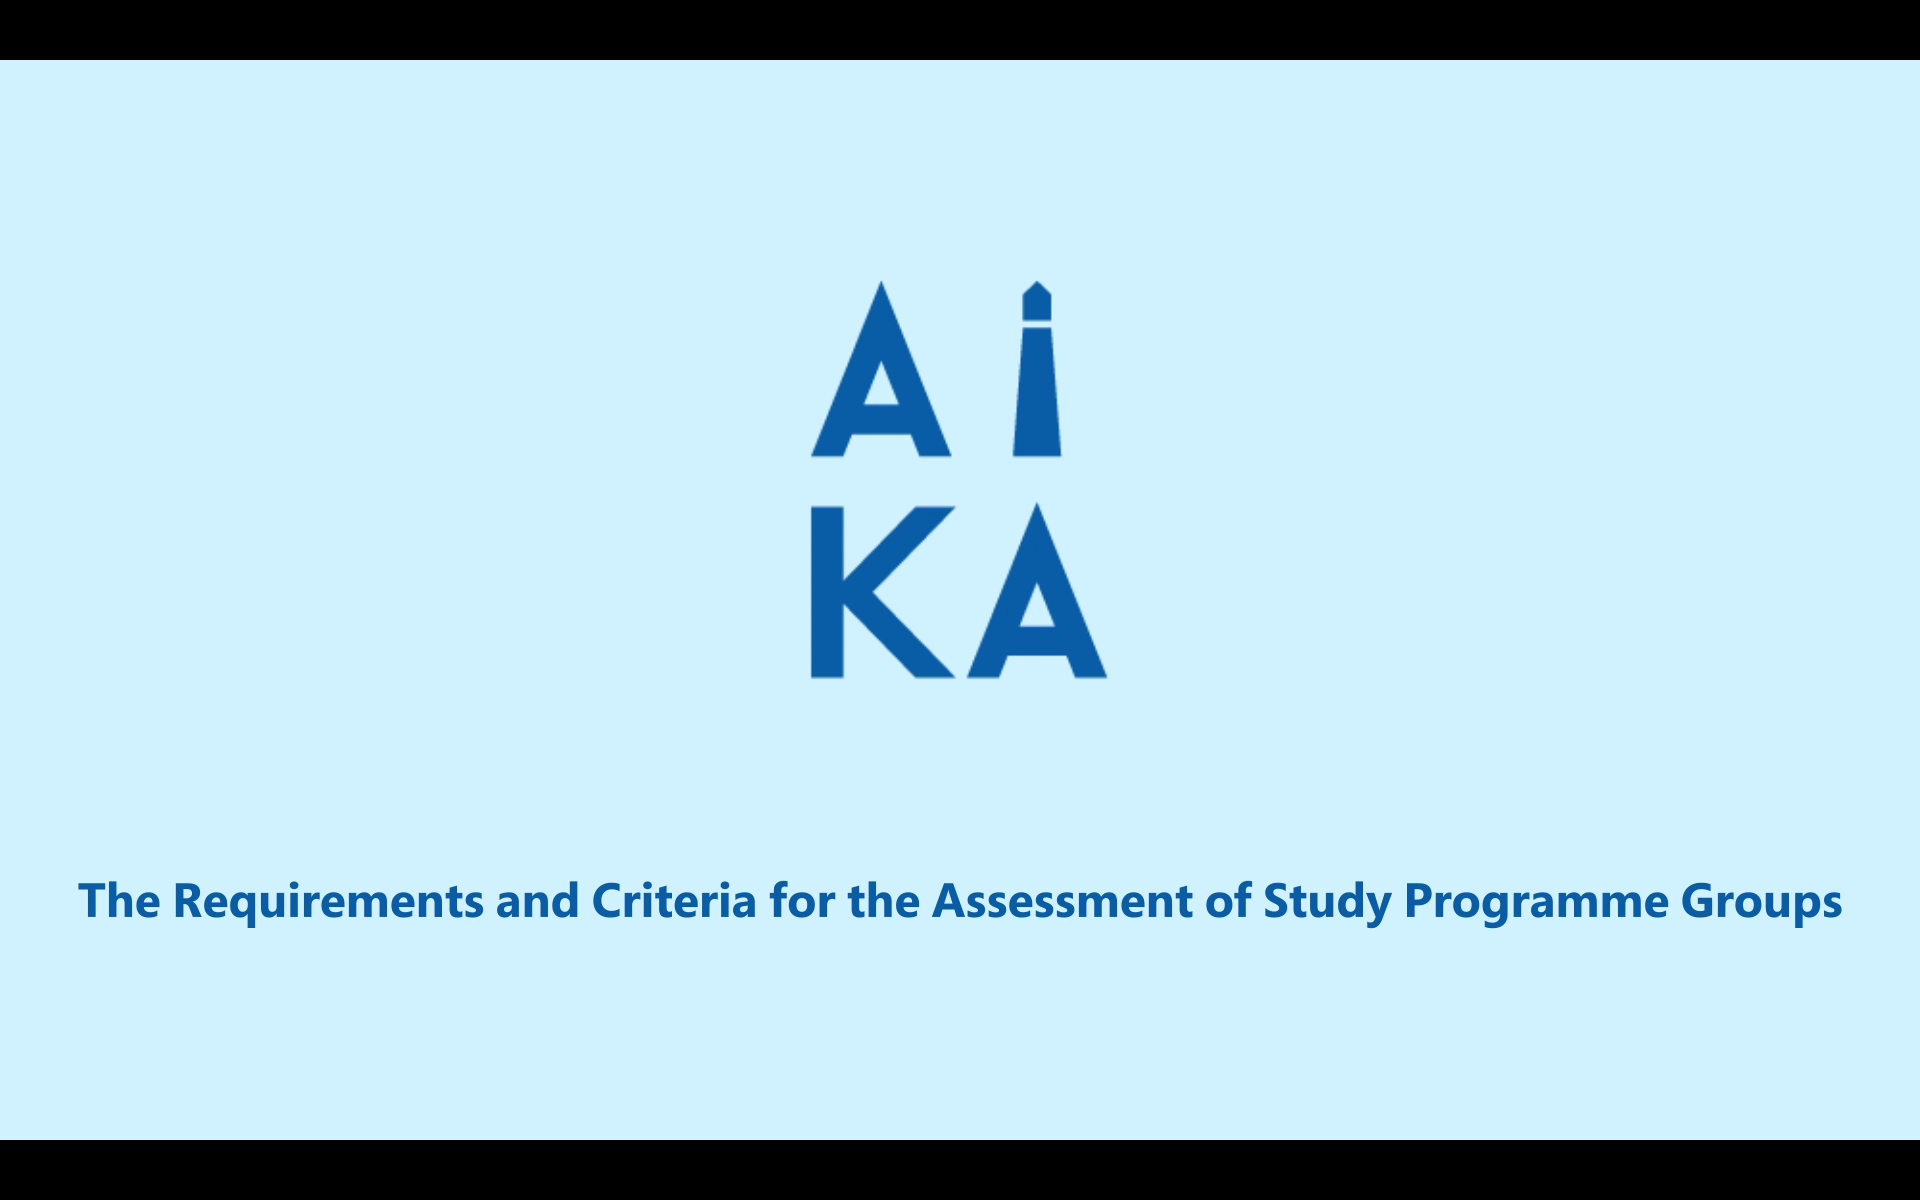 The Requirements and Criteria for the Assessment of Study Programme Groups